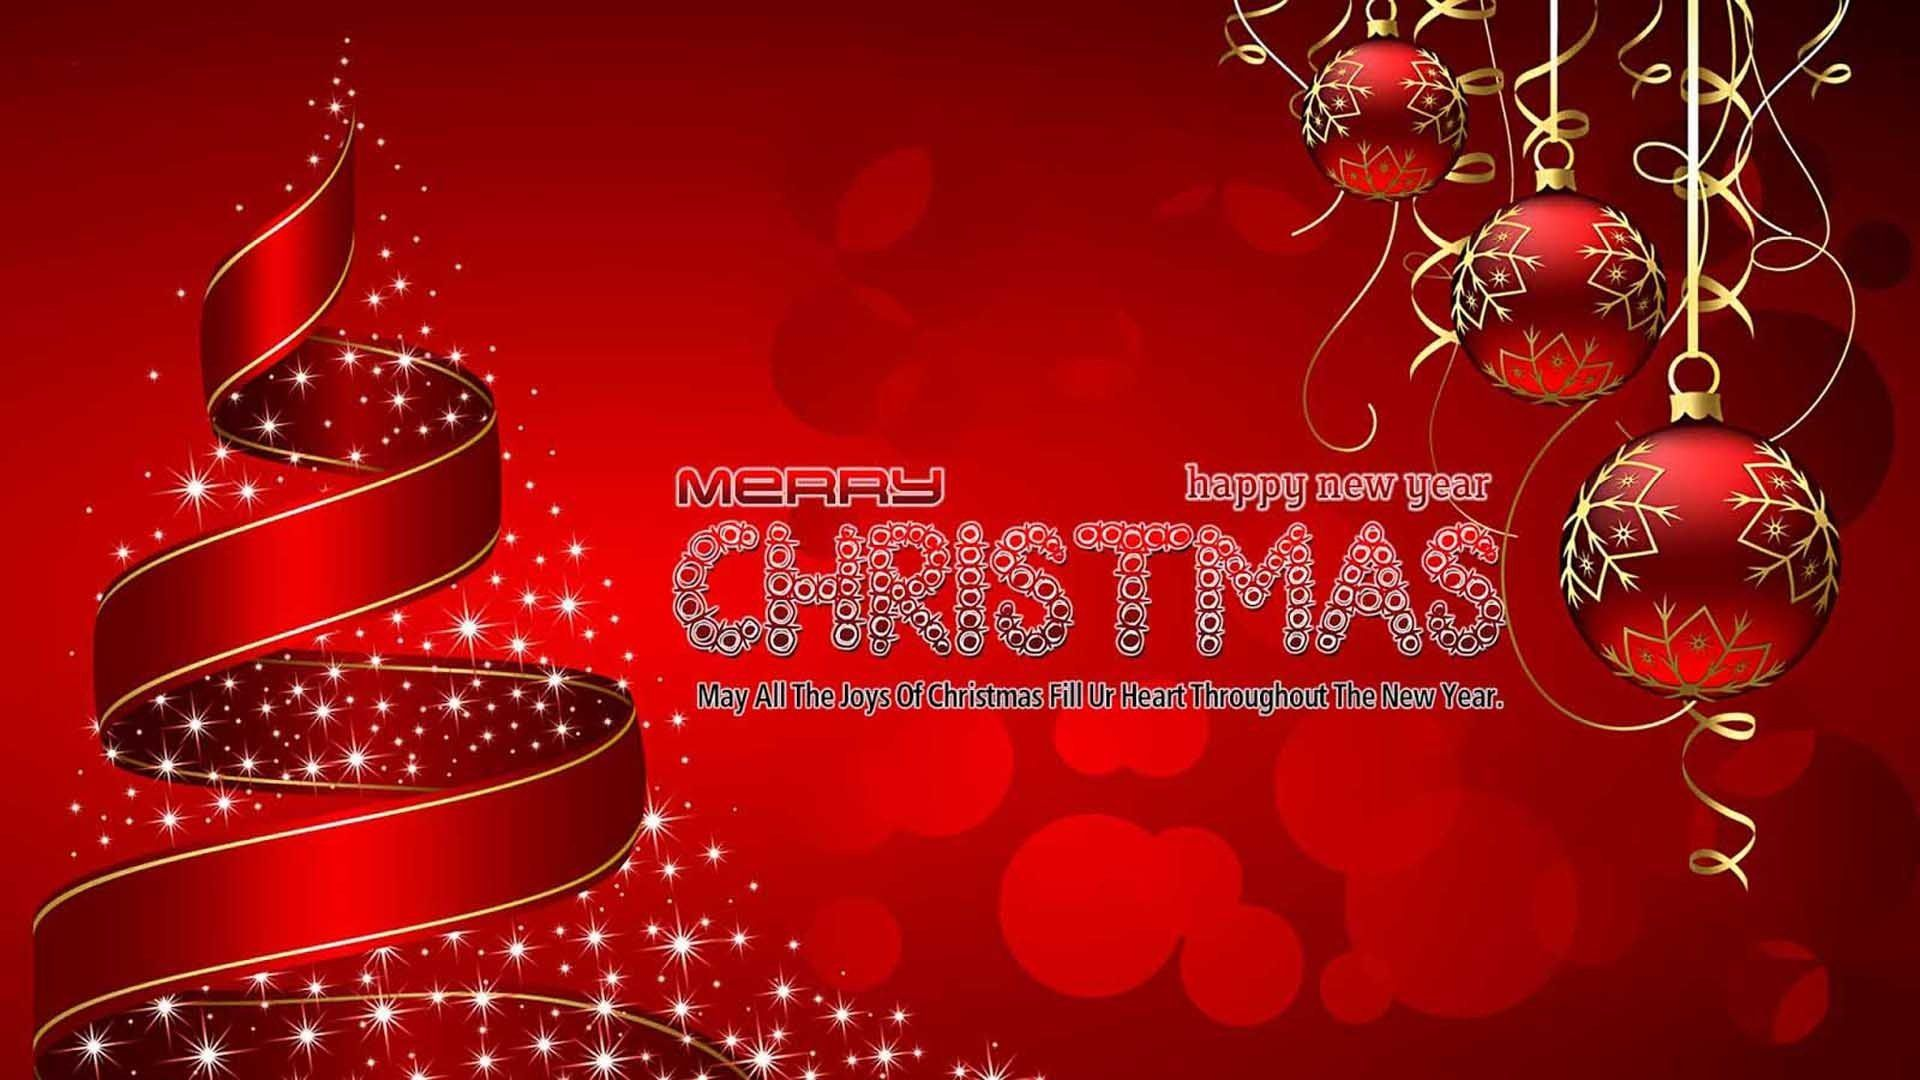 2021 Happy Merry Christmas And Happy New Year Wallpaper Lake Up In Mountain Merry Christmas Happy New Year 2021 Wallpapers Wallpaper Cave